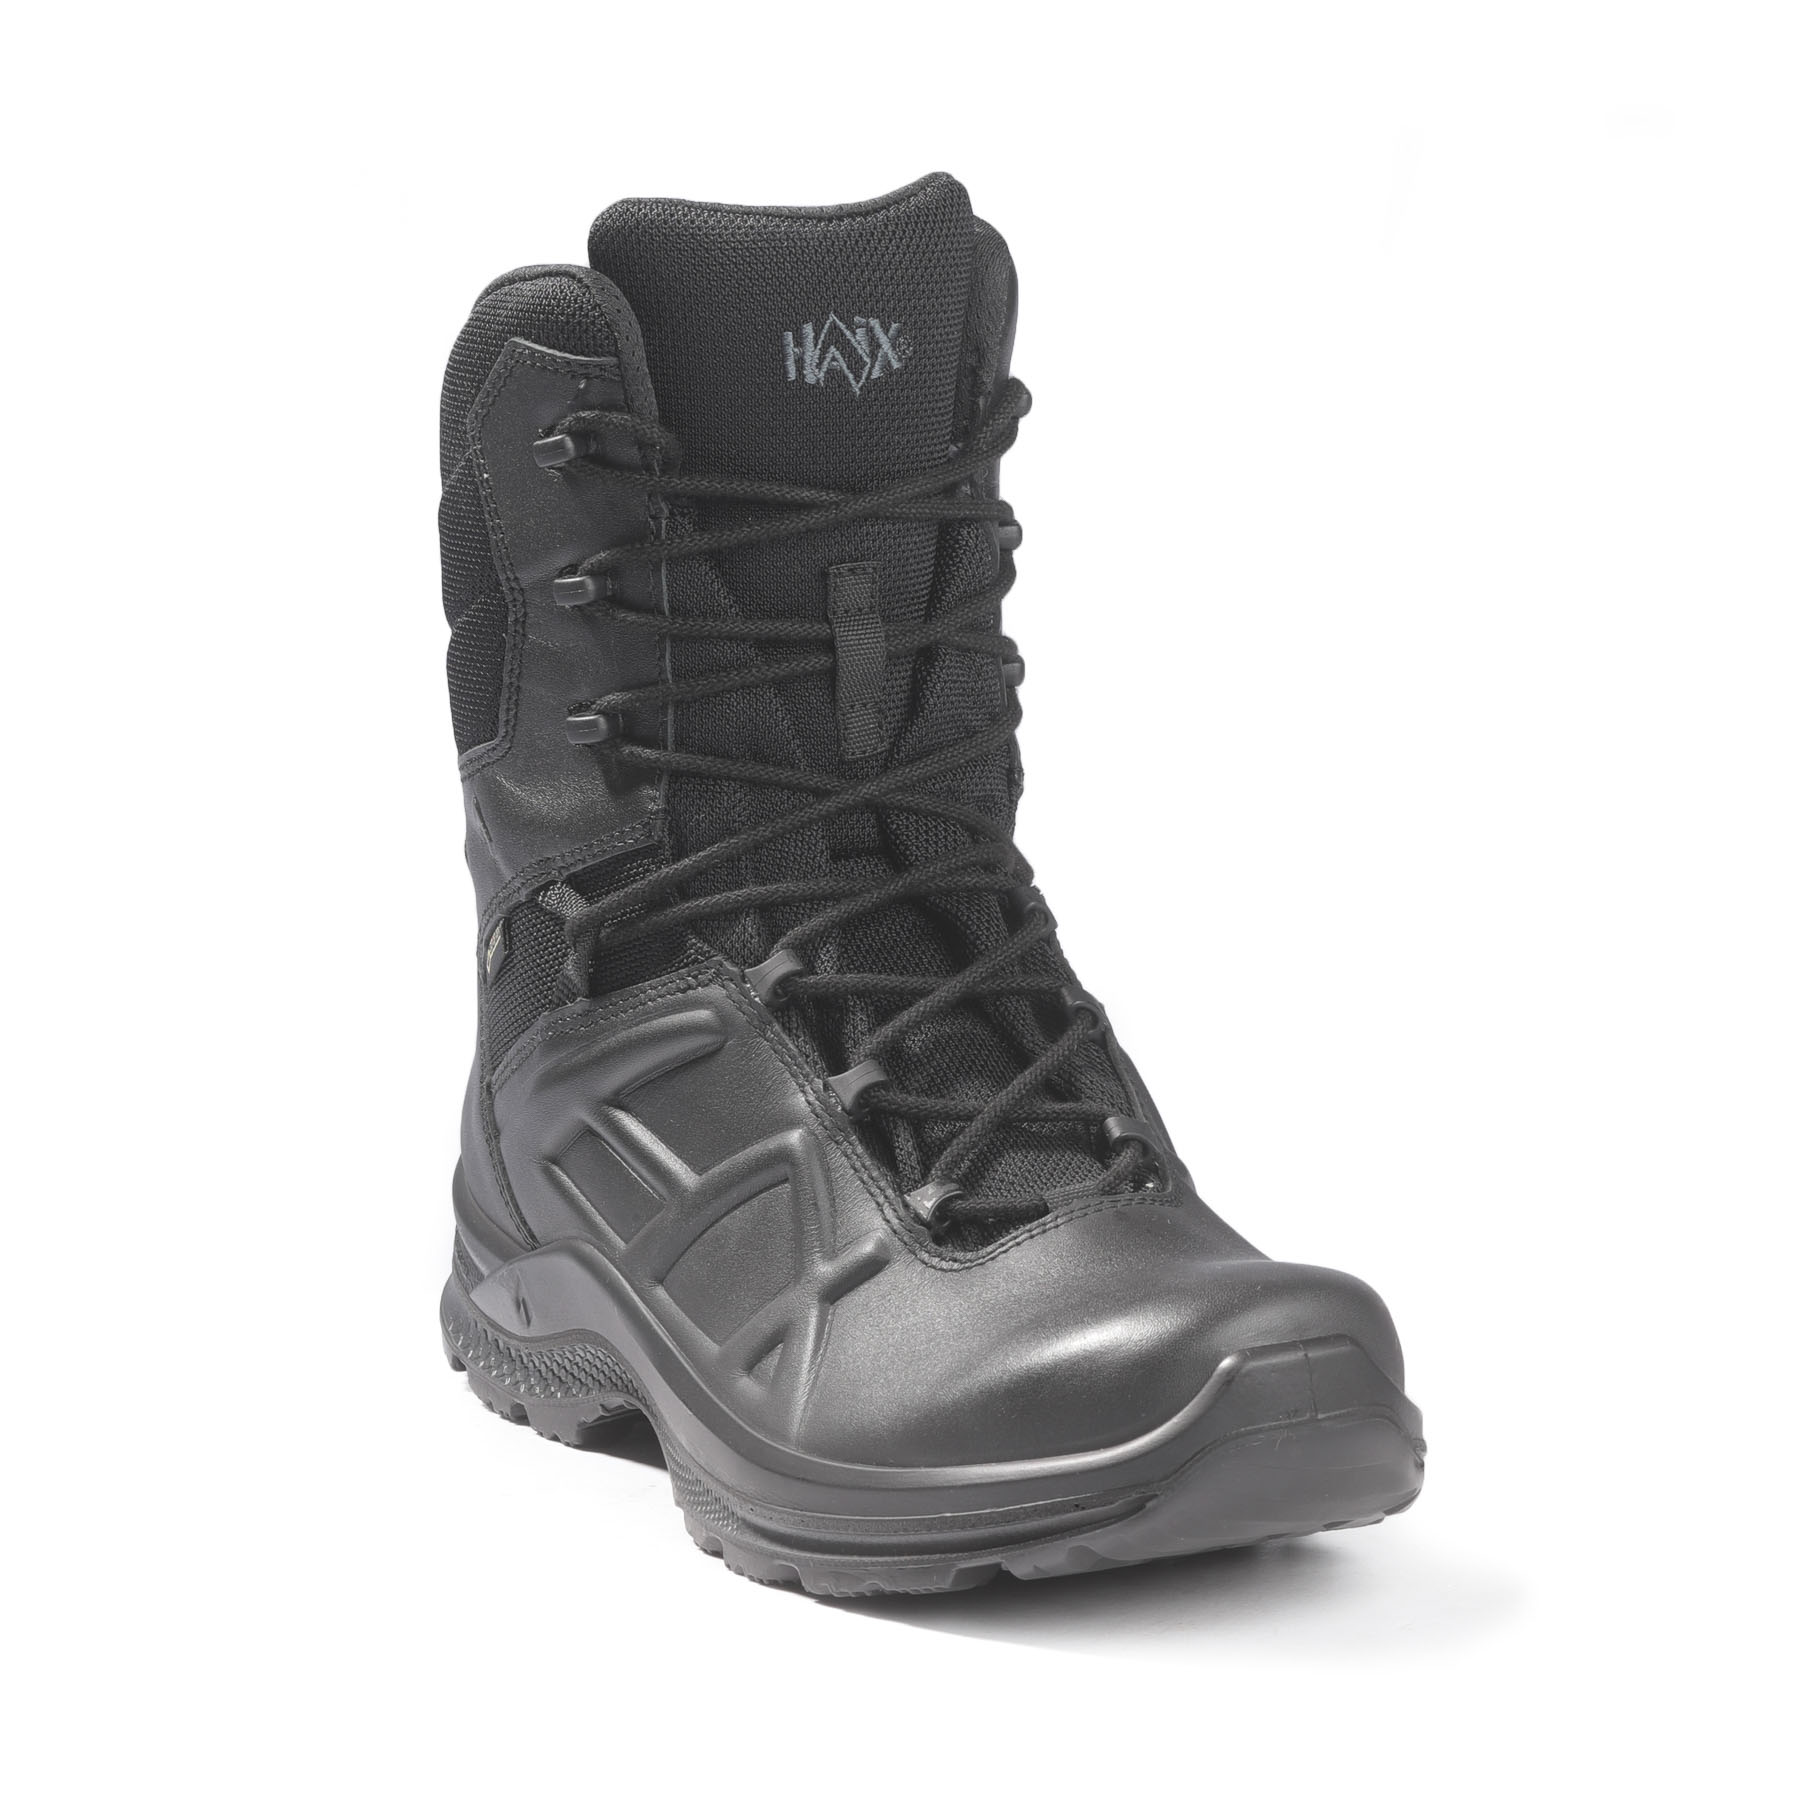 b5da9d9add8 HAIX Black Eagle Athletic 2.0 T High Side Zip